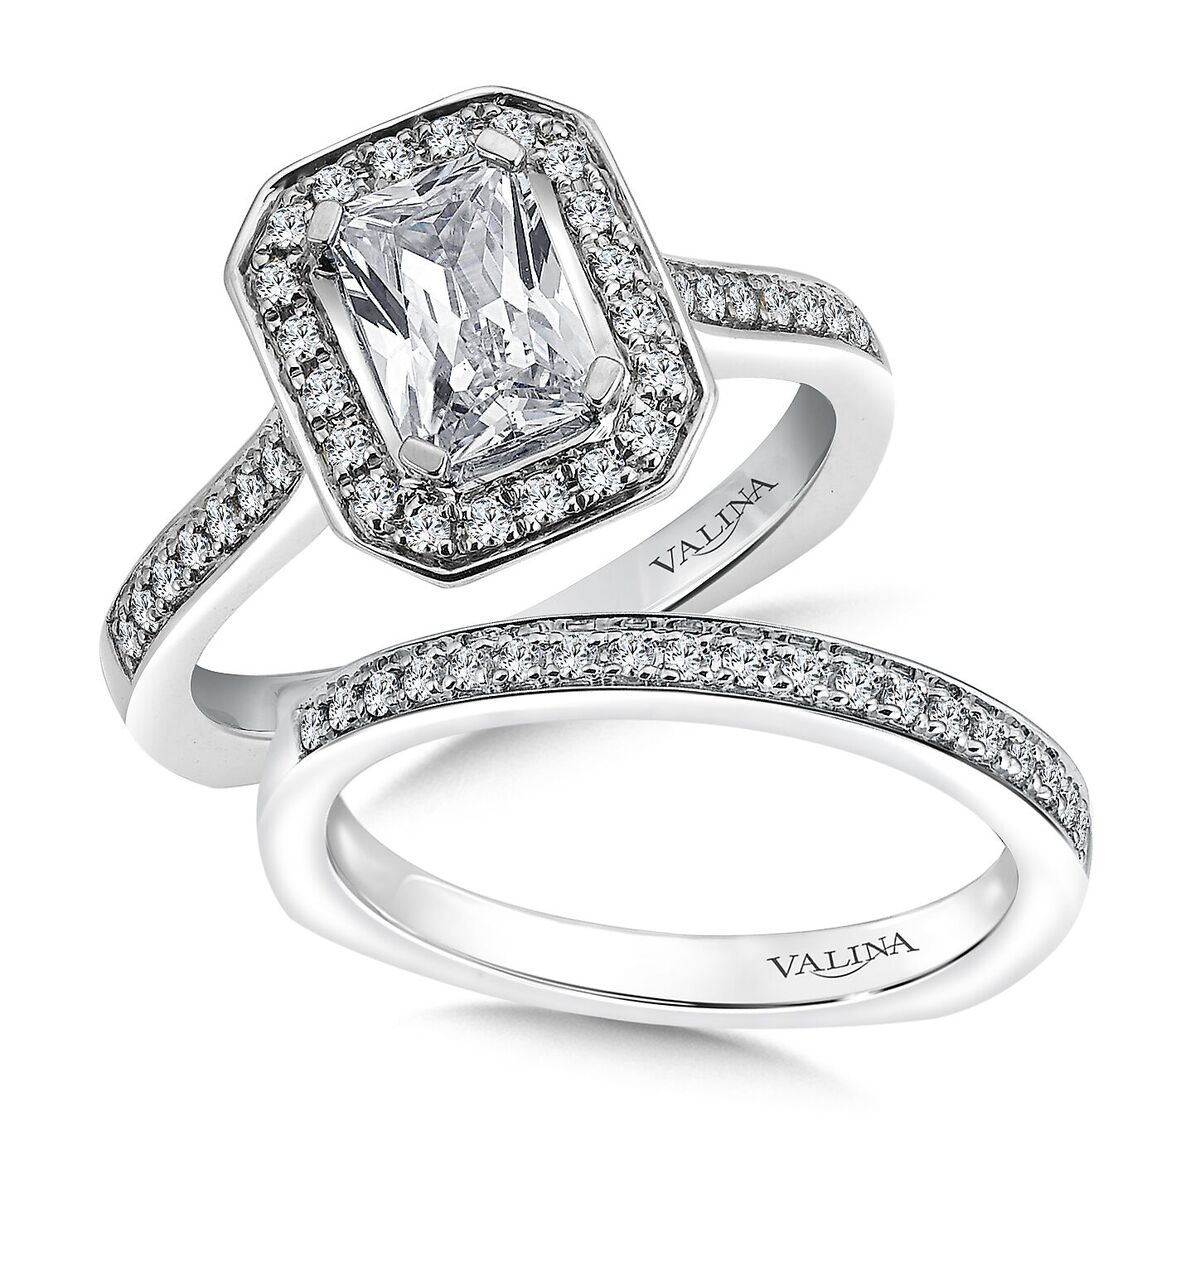 Custom Emerald Cut Engagement Ring in Dallas texas - Wholesale Engagement Rings